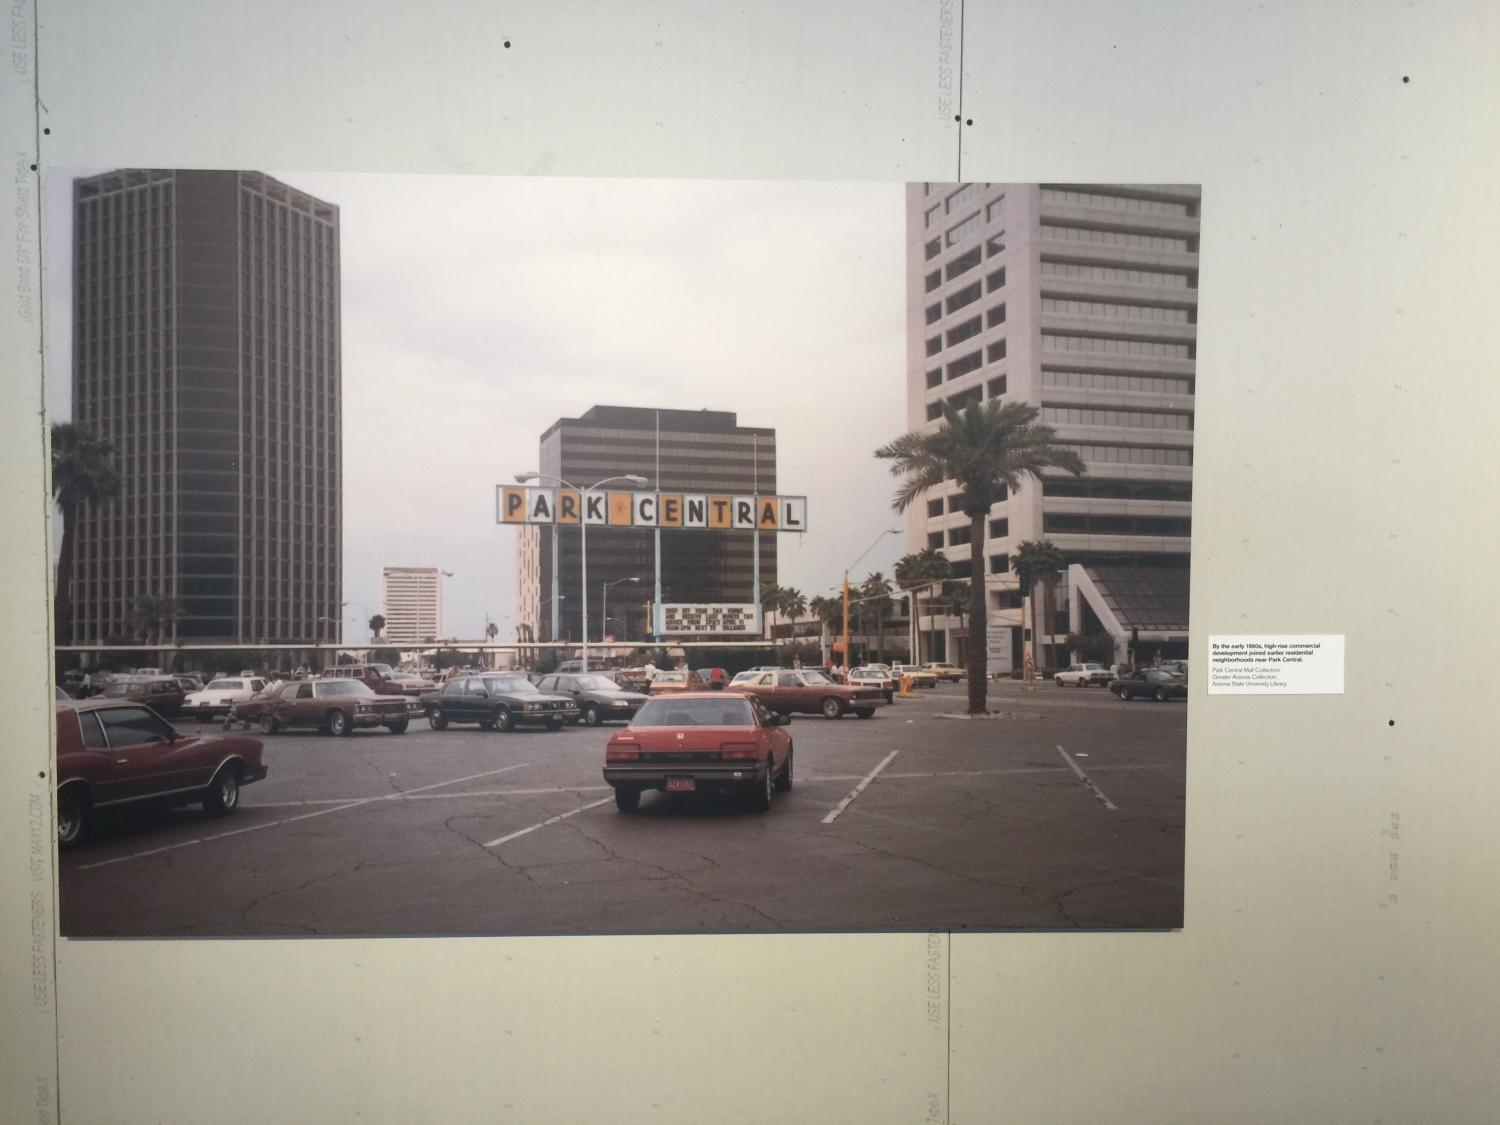 Photo from Park Central archives at site